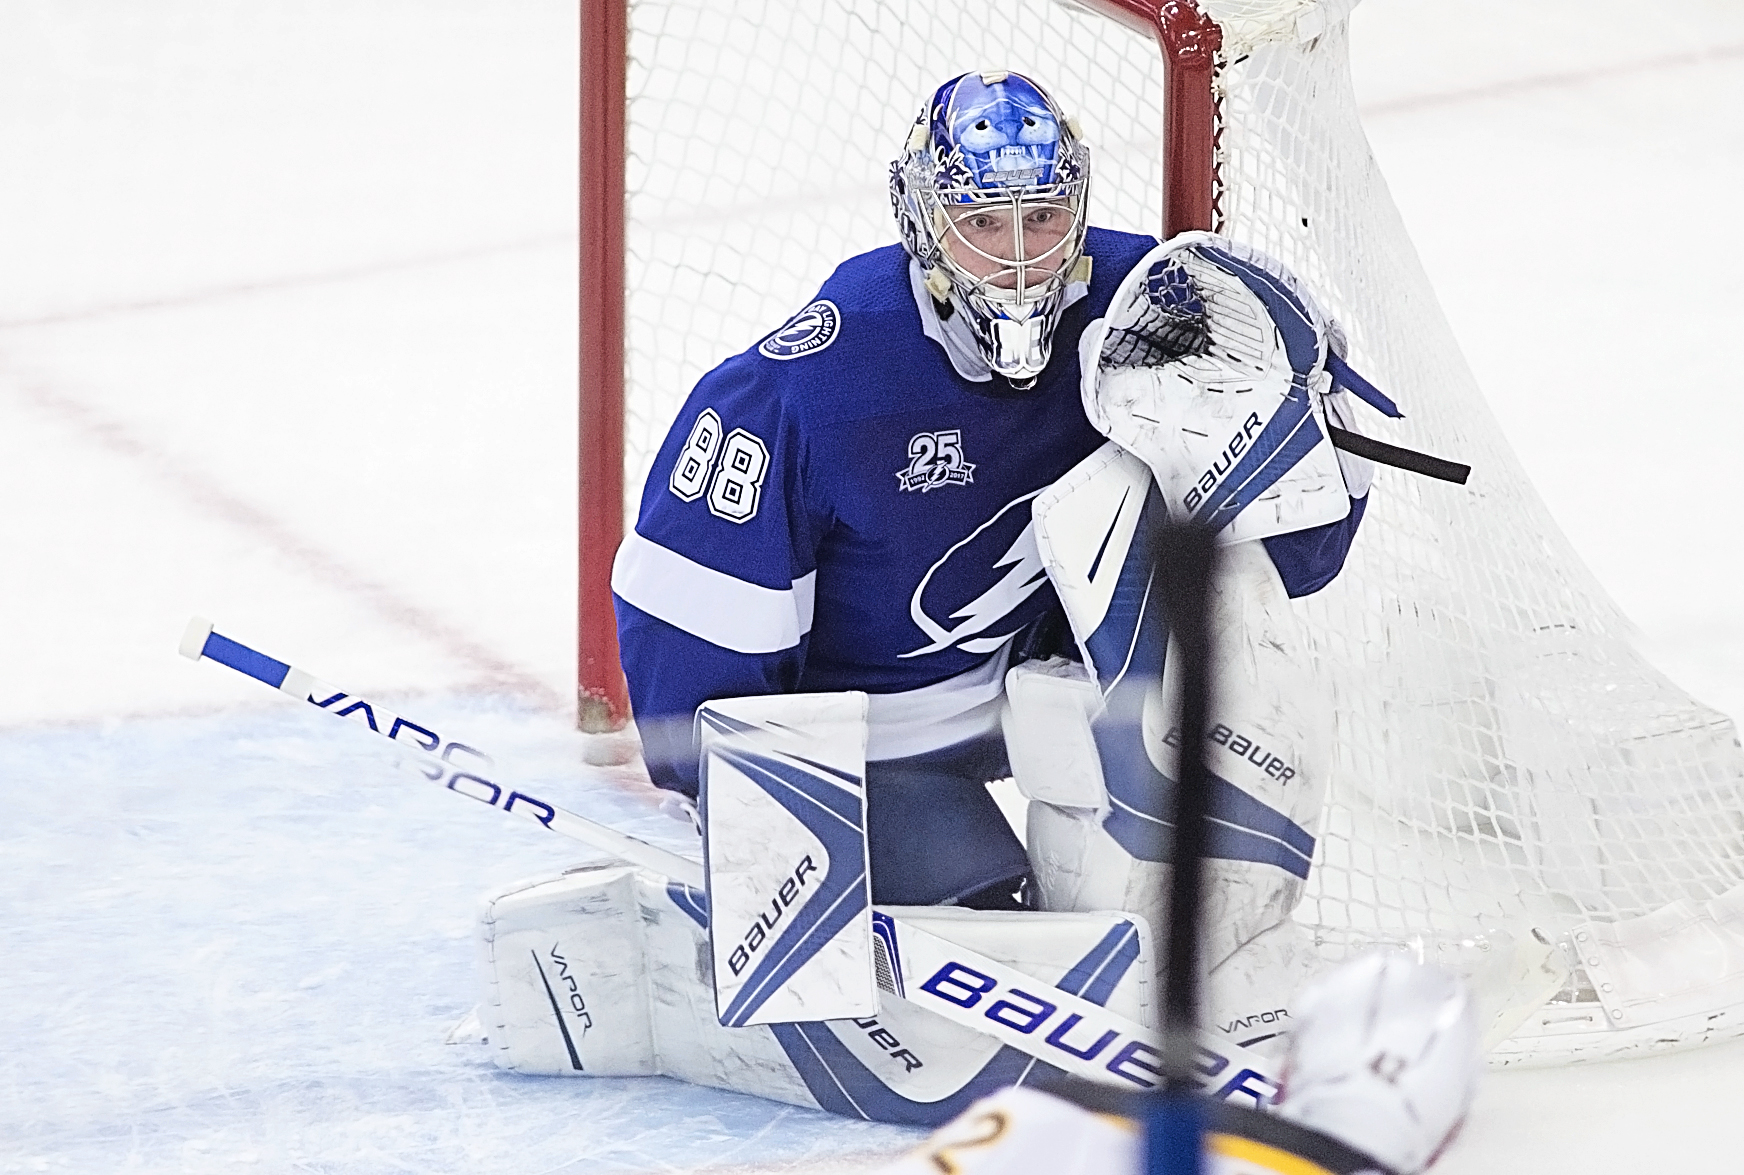 Vasilevskiy kept the Bruins at bay./CARMEN MANDATO